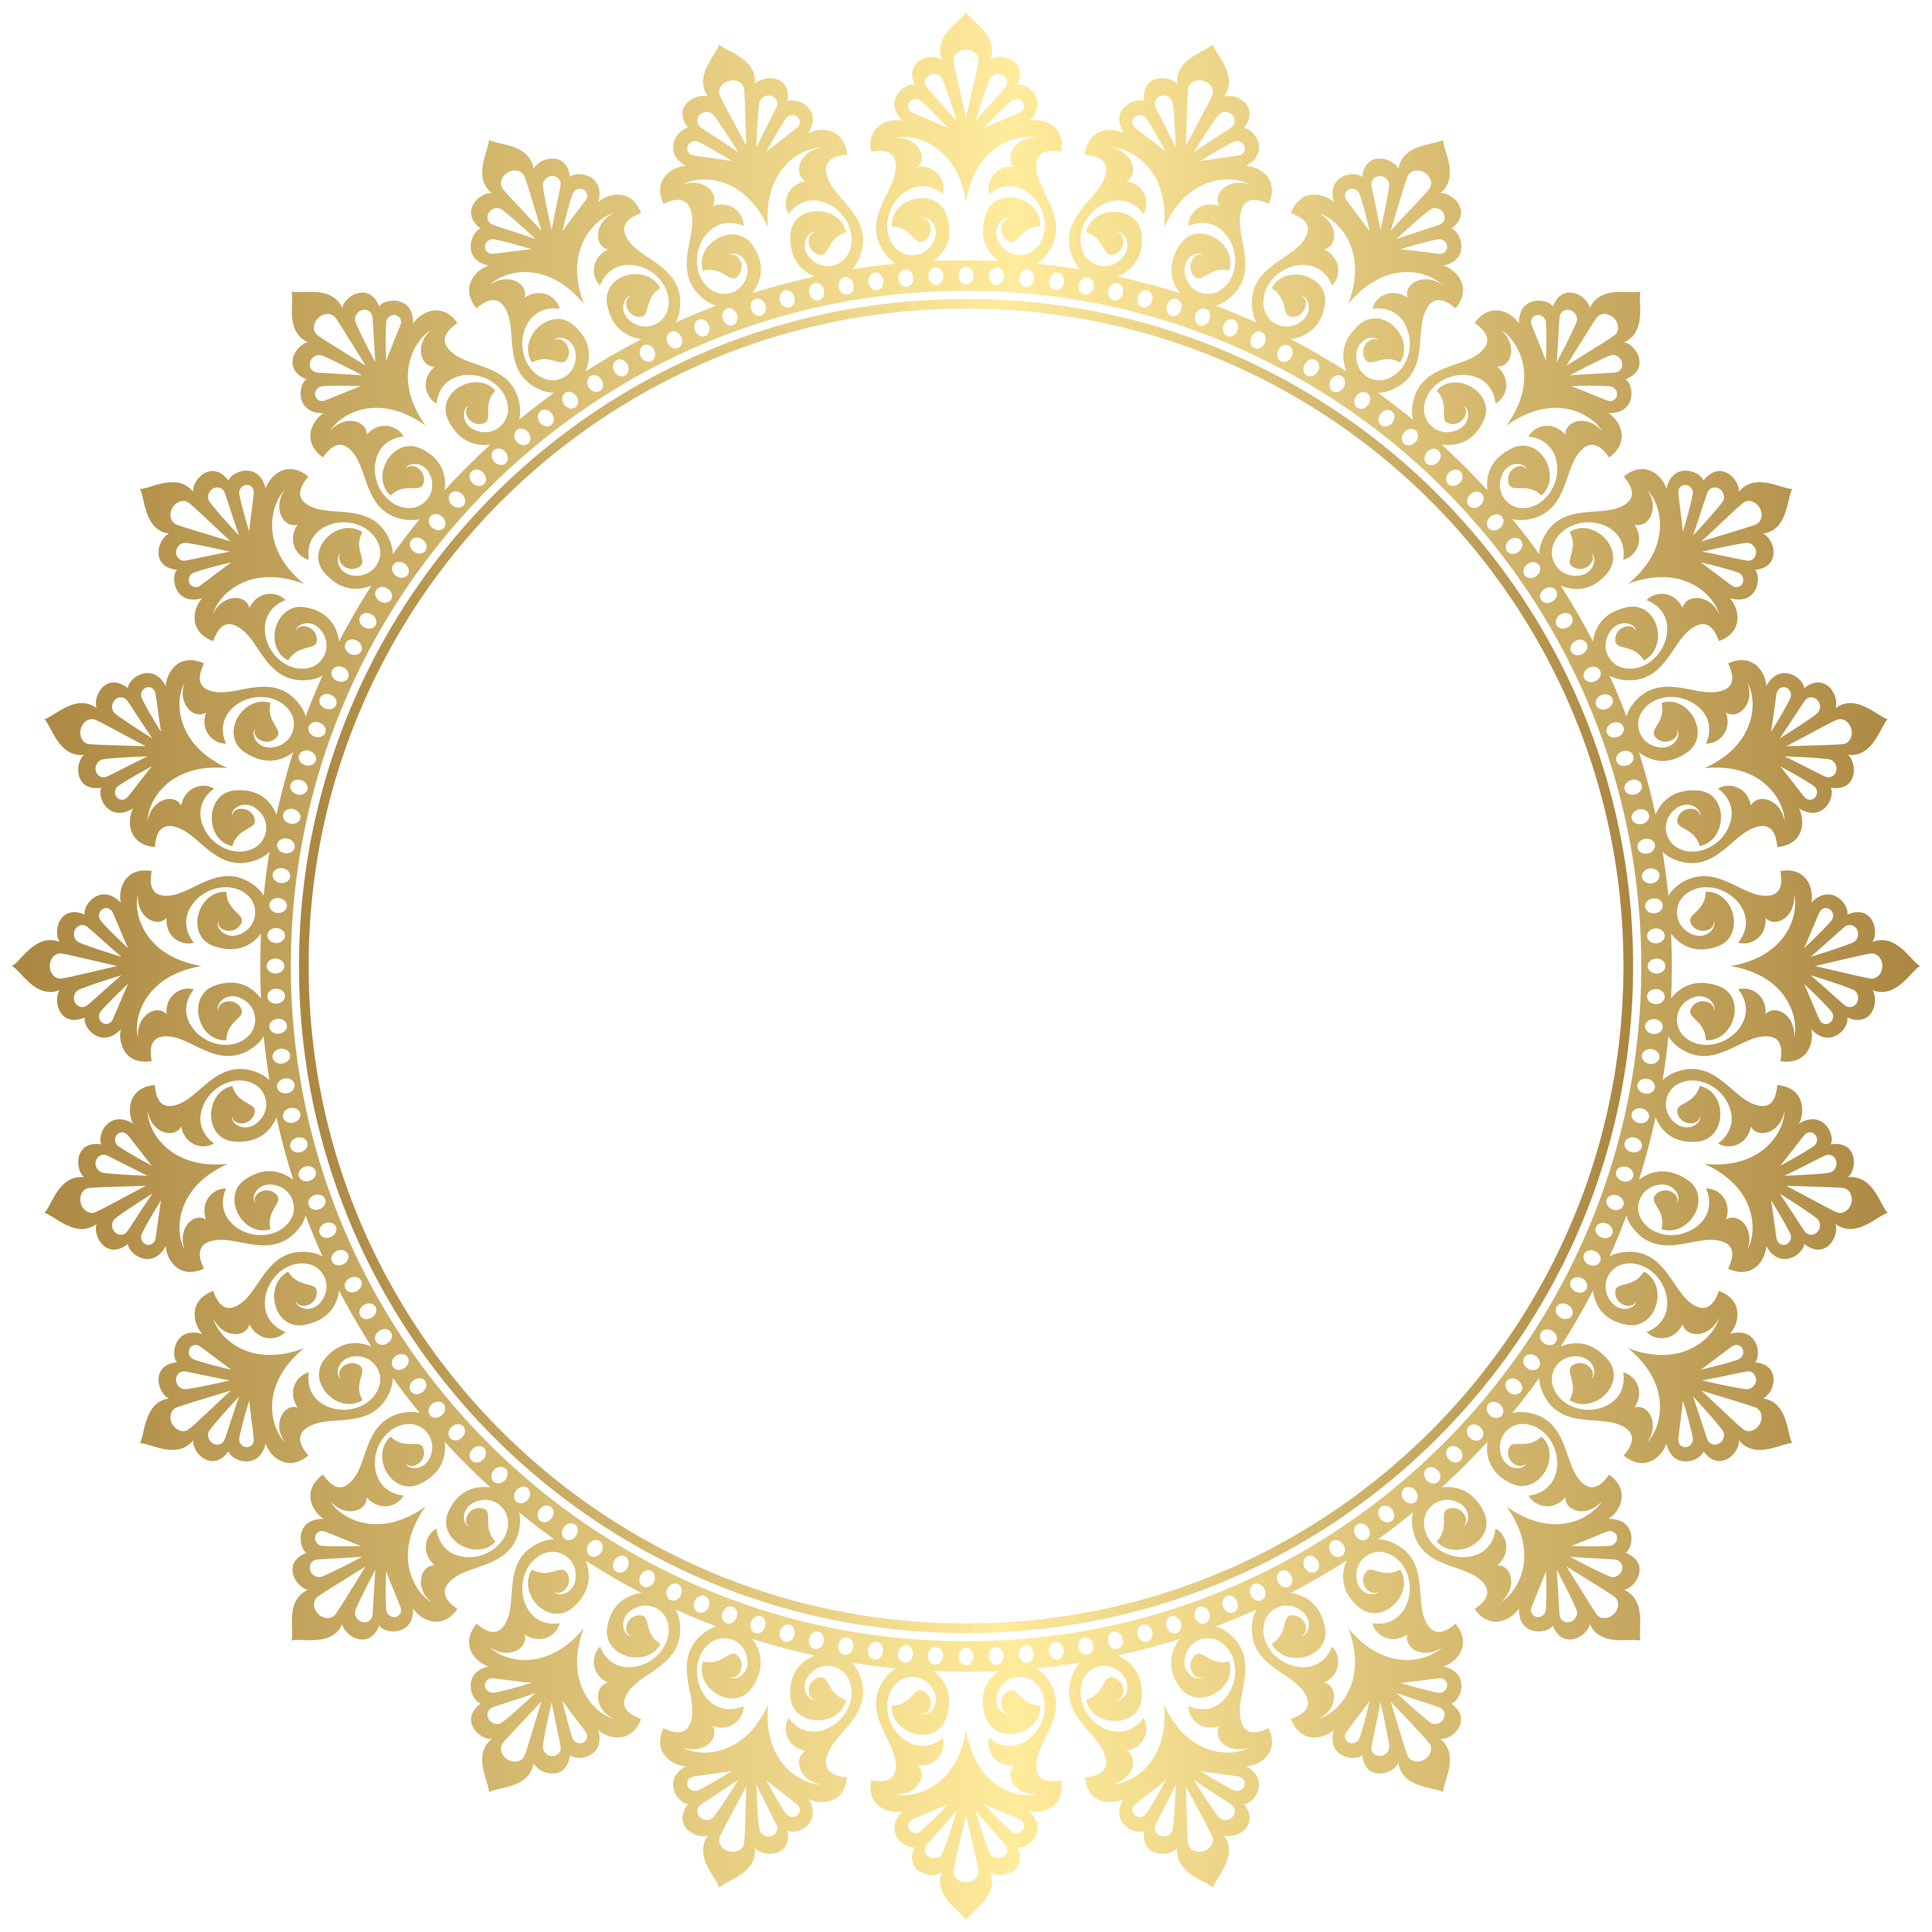 King crown monogram circle border clipart png freeuse download Round Border Frame Clip Art PNG Image | PNG GOLD | Pinterest | Round ... png freeuse download